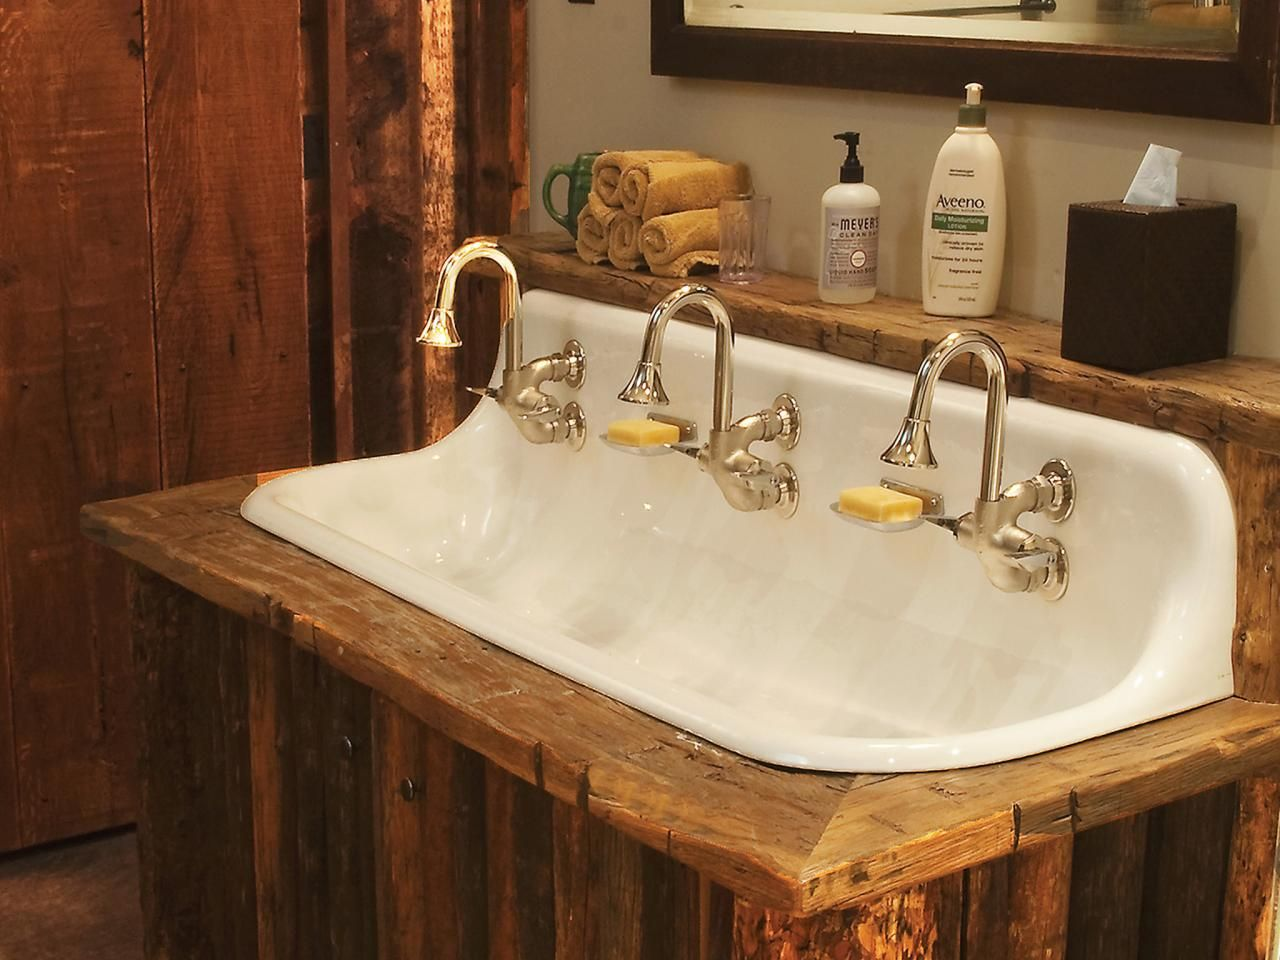 Old Rustic Bathrooms Ci Rustic Elegance Cast Iron Sink Three - Vintage wall mount bathroom sink for bathroom decor ideas